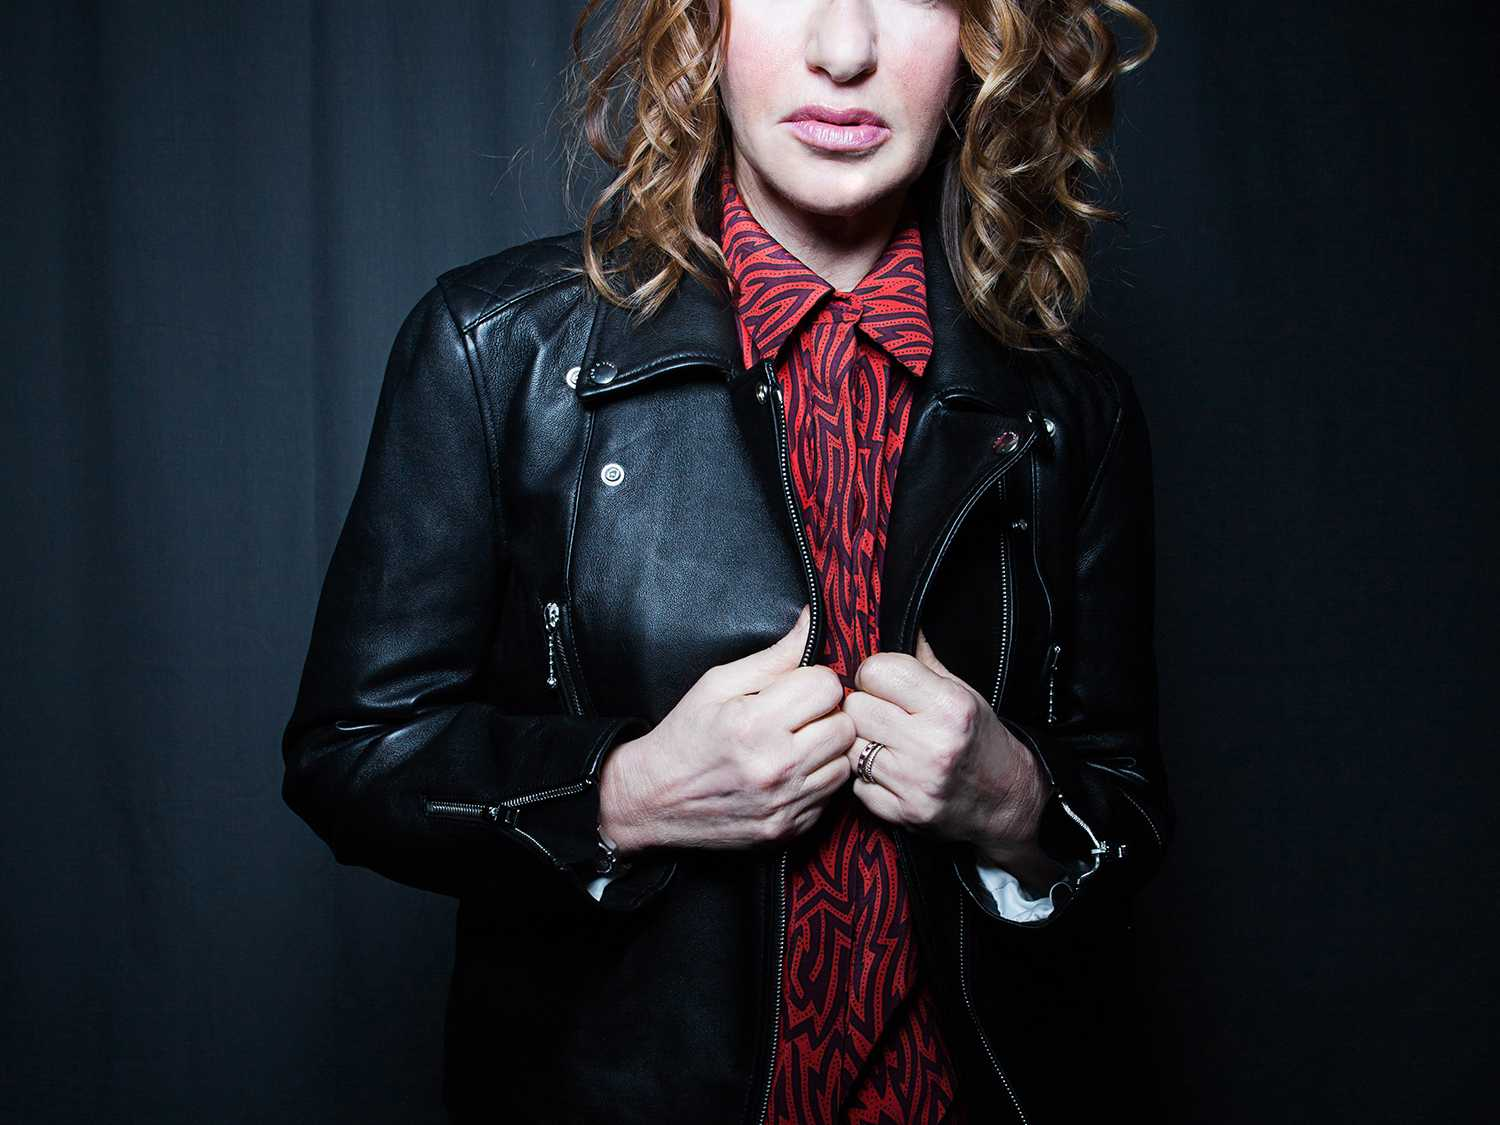 Sandra Bernhard Performs at SF's Regency Ballroom